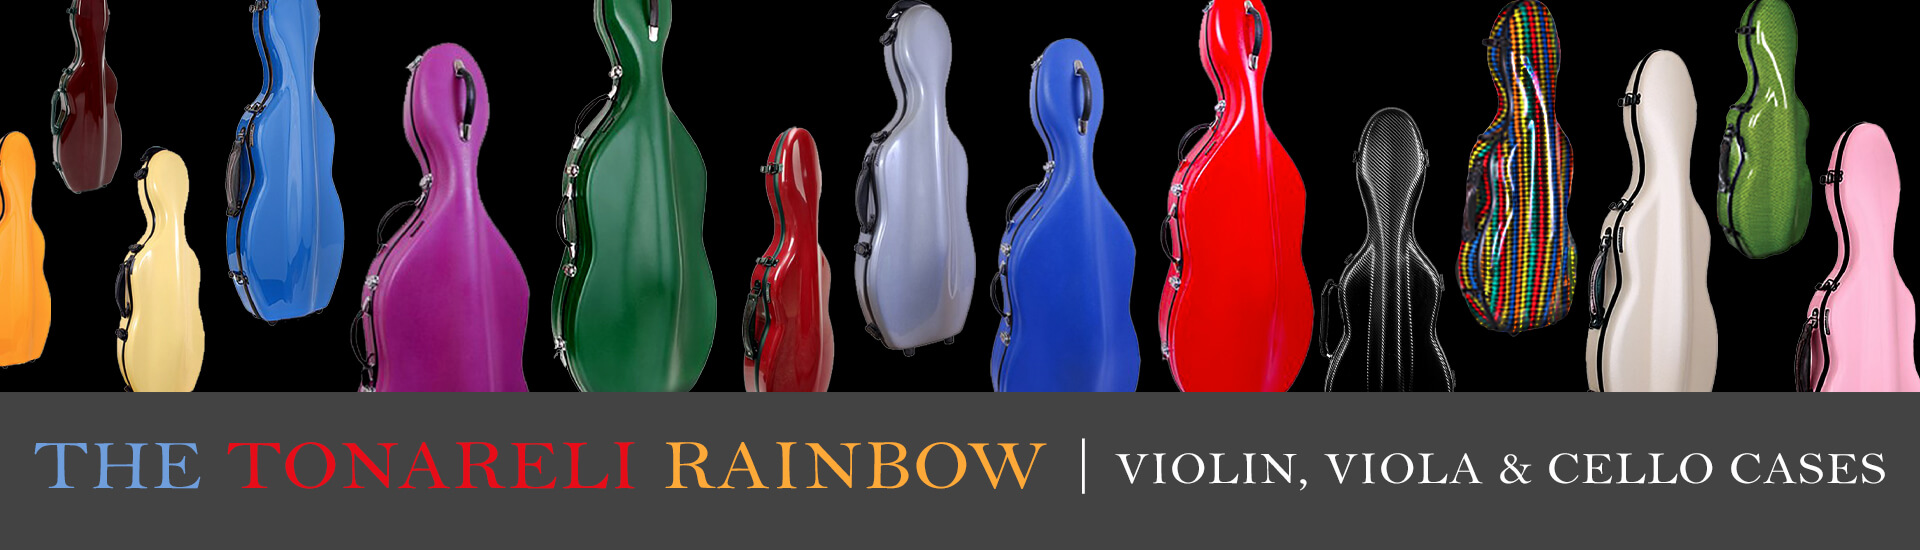 Violin, viola and cello cases in a huge selection of colors